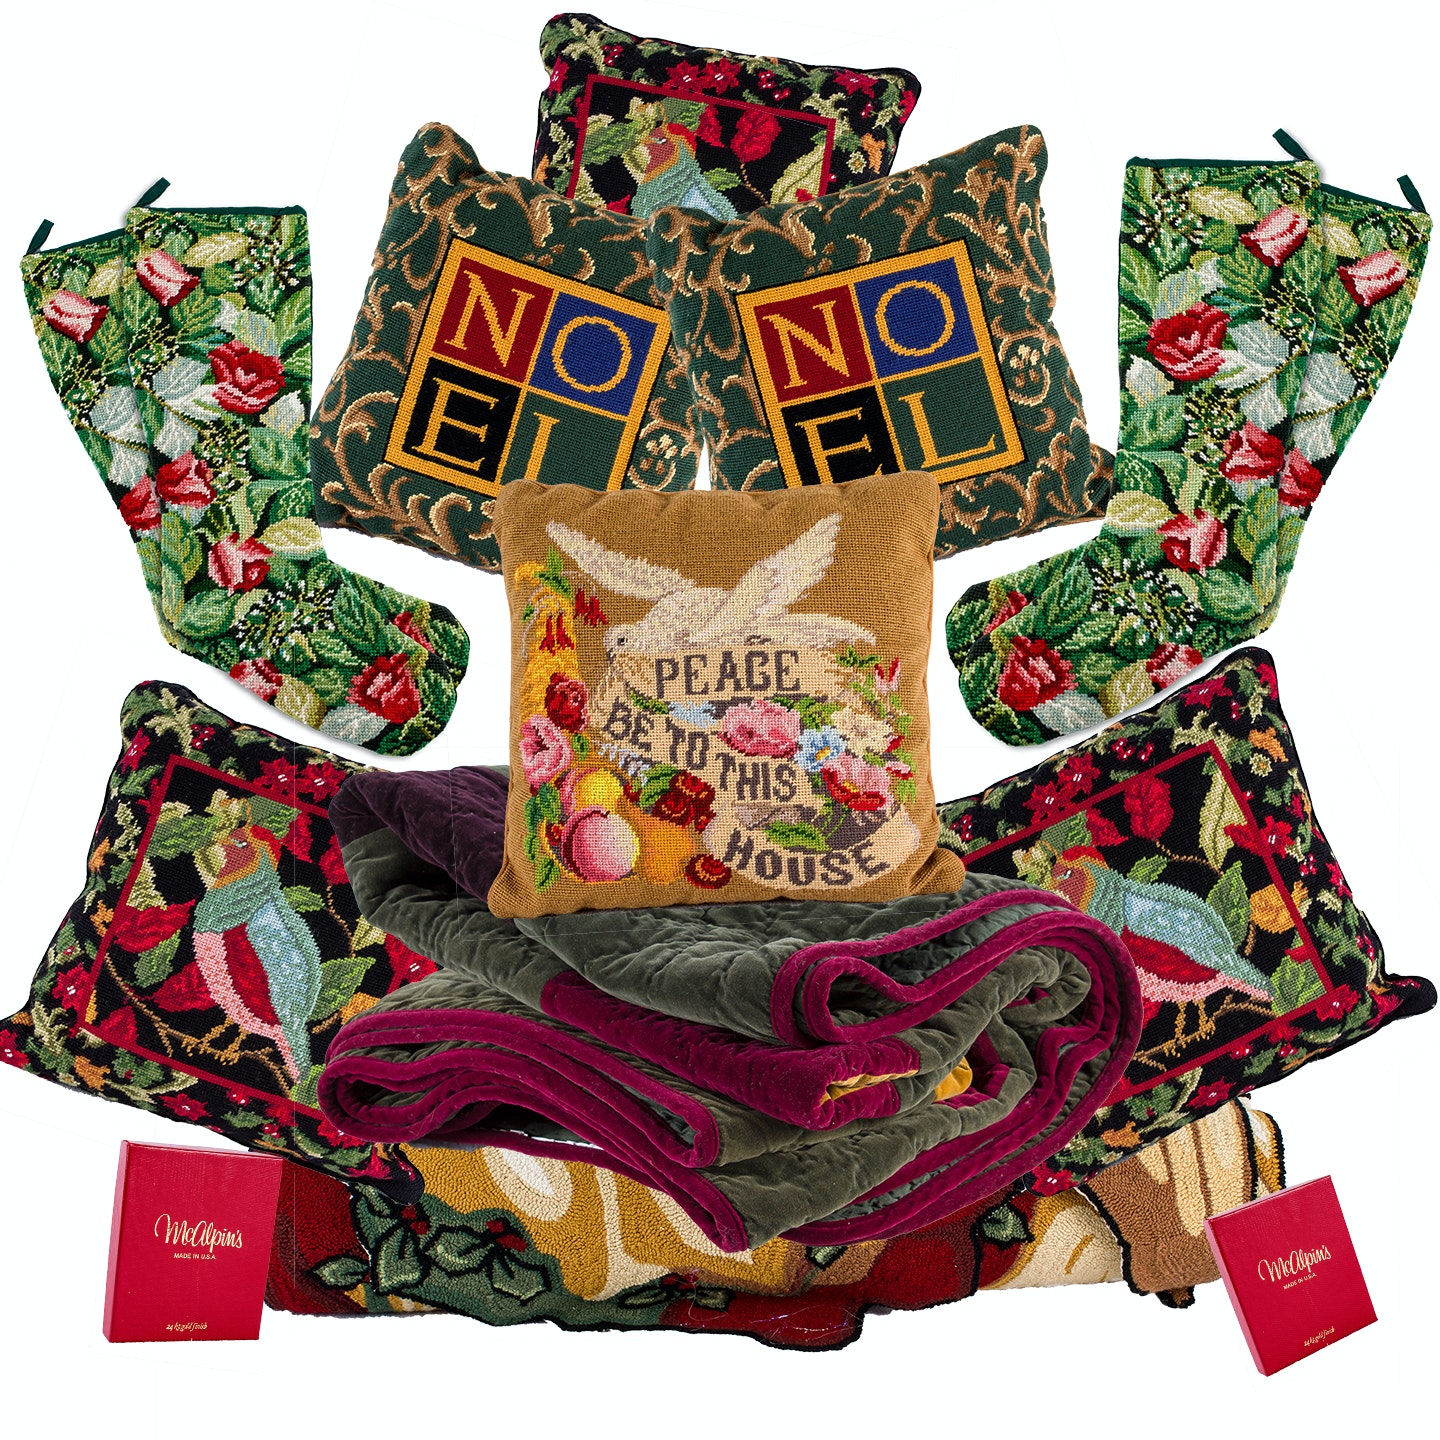 Needlepoint Textiles, Ornaments and Holiday Decor